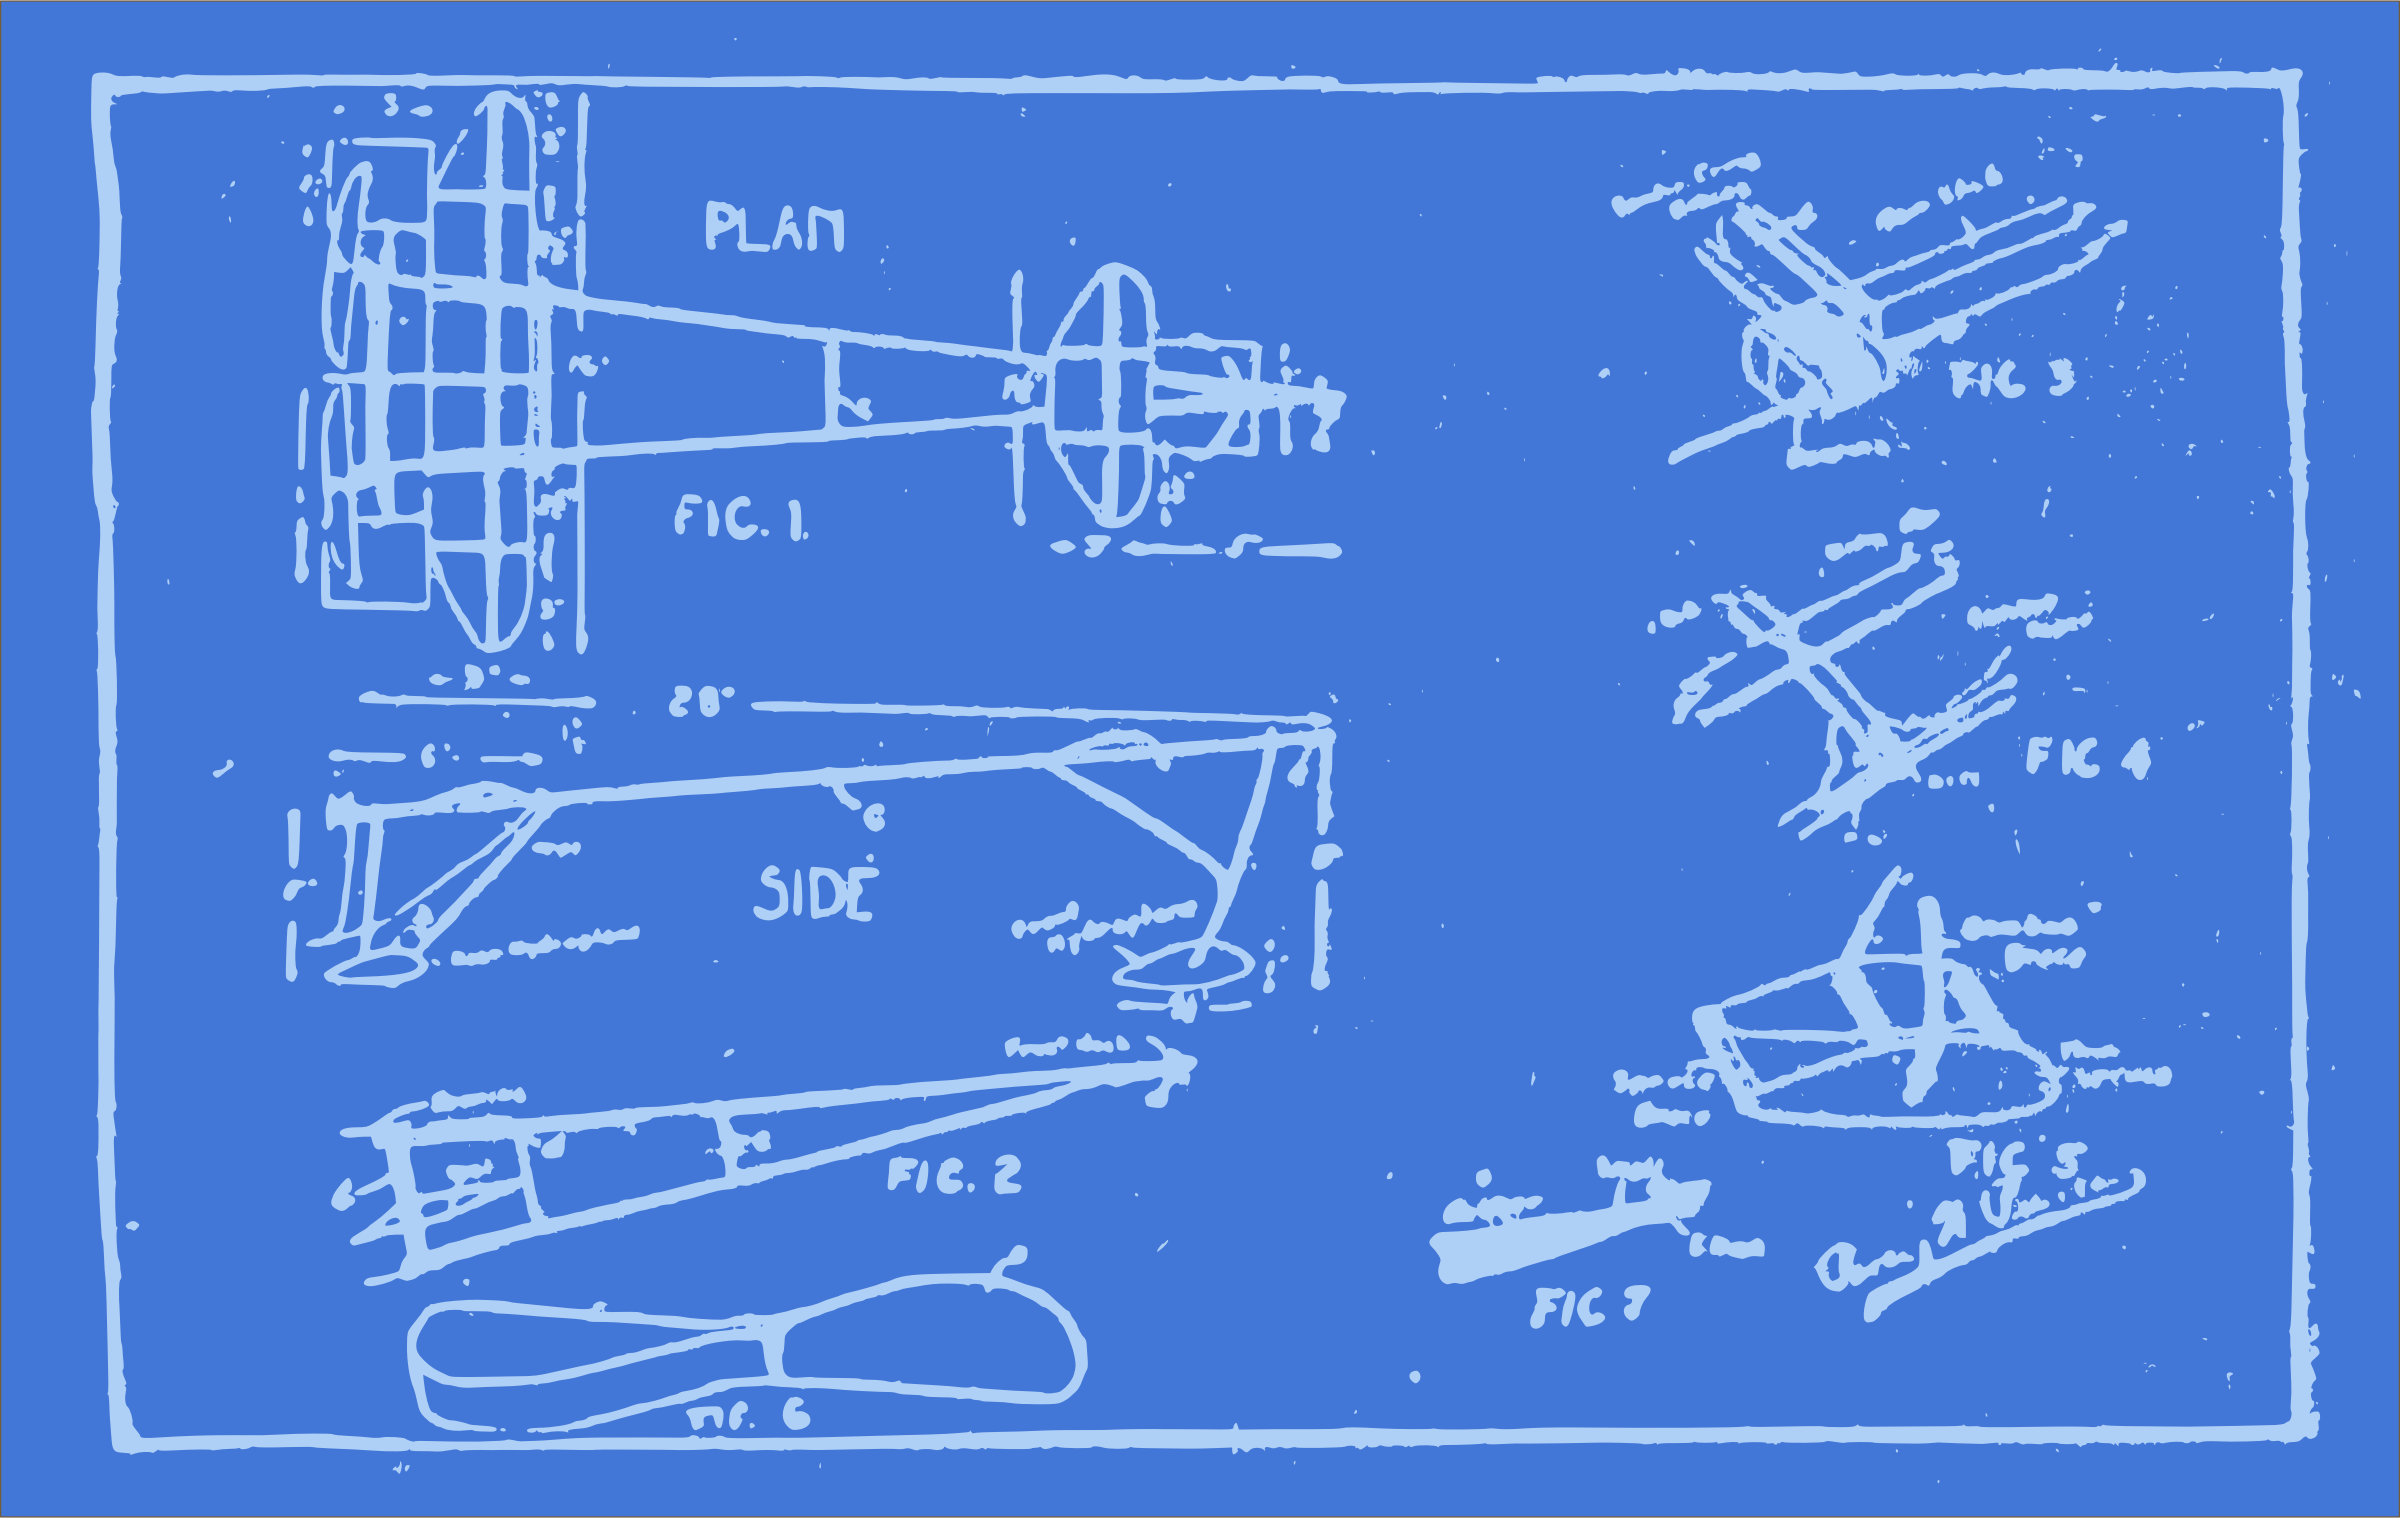 Blueprint of an Airplane by j4p4n